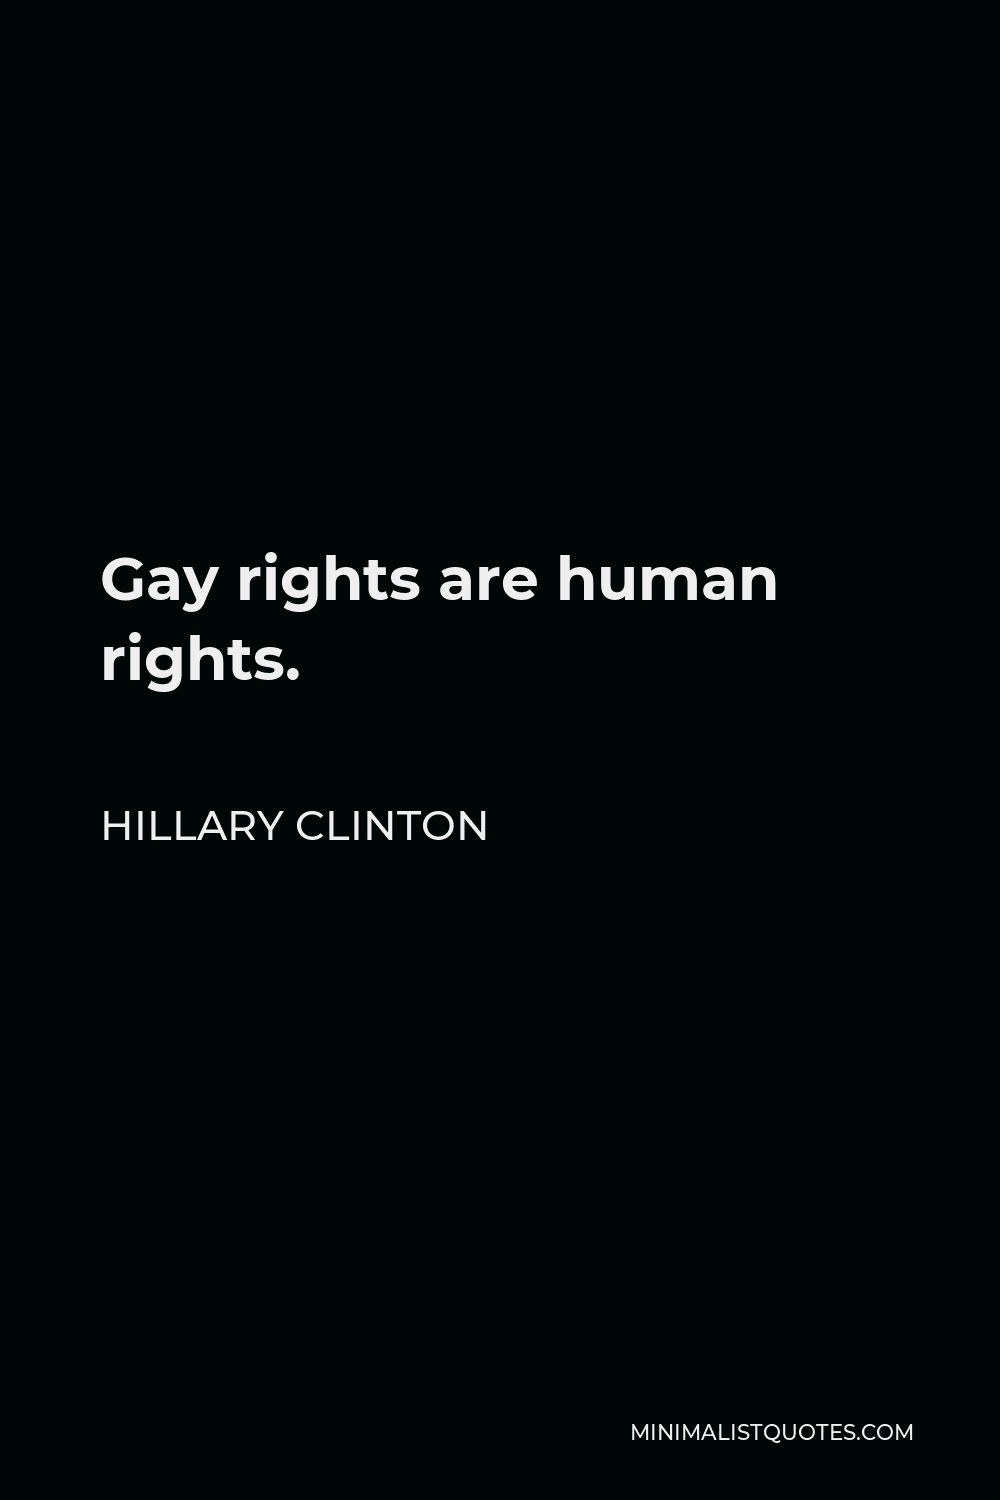 Hillary Clinton Quote - Gay rights are human rights.